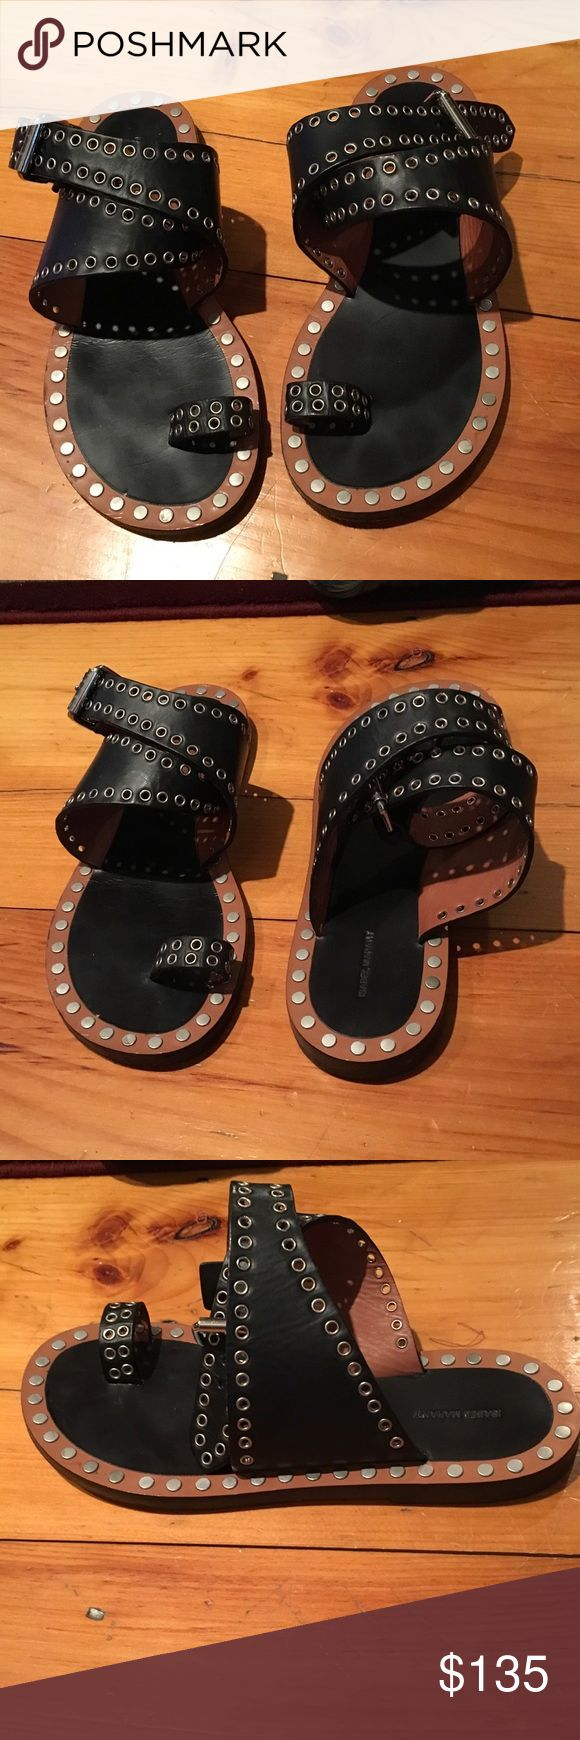 """Isabel Marant Black Wrap Sandals Isabel Marant Black Leather Ankle-Wrap Sandals. Size 8. Gold-Tone Hardware, Grommet Embellishments Throughout Uppers, Rivets at Soles. Stacked Heels, and Buckle Closure at Ankle Wrap. Heel Measures 0.5"""". Worn Once. Isabel Marant Shoes Sandals"""